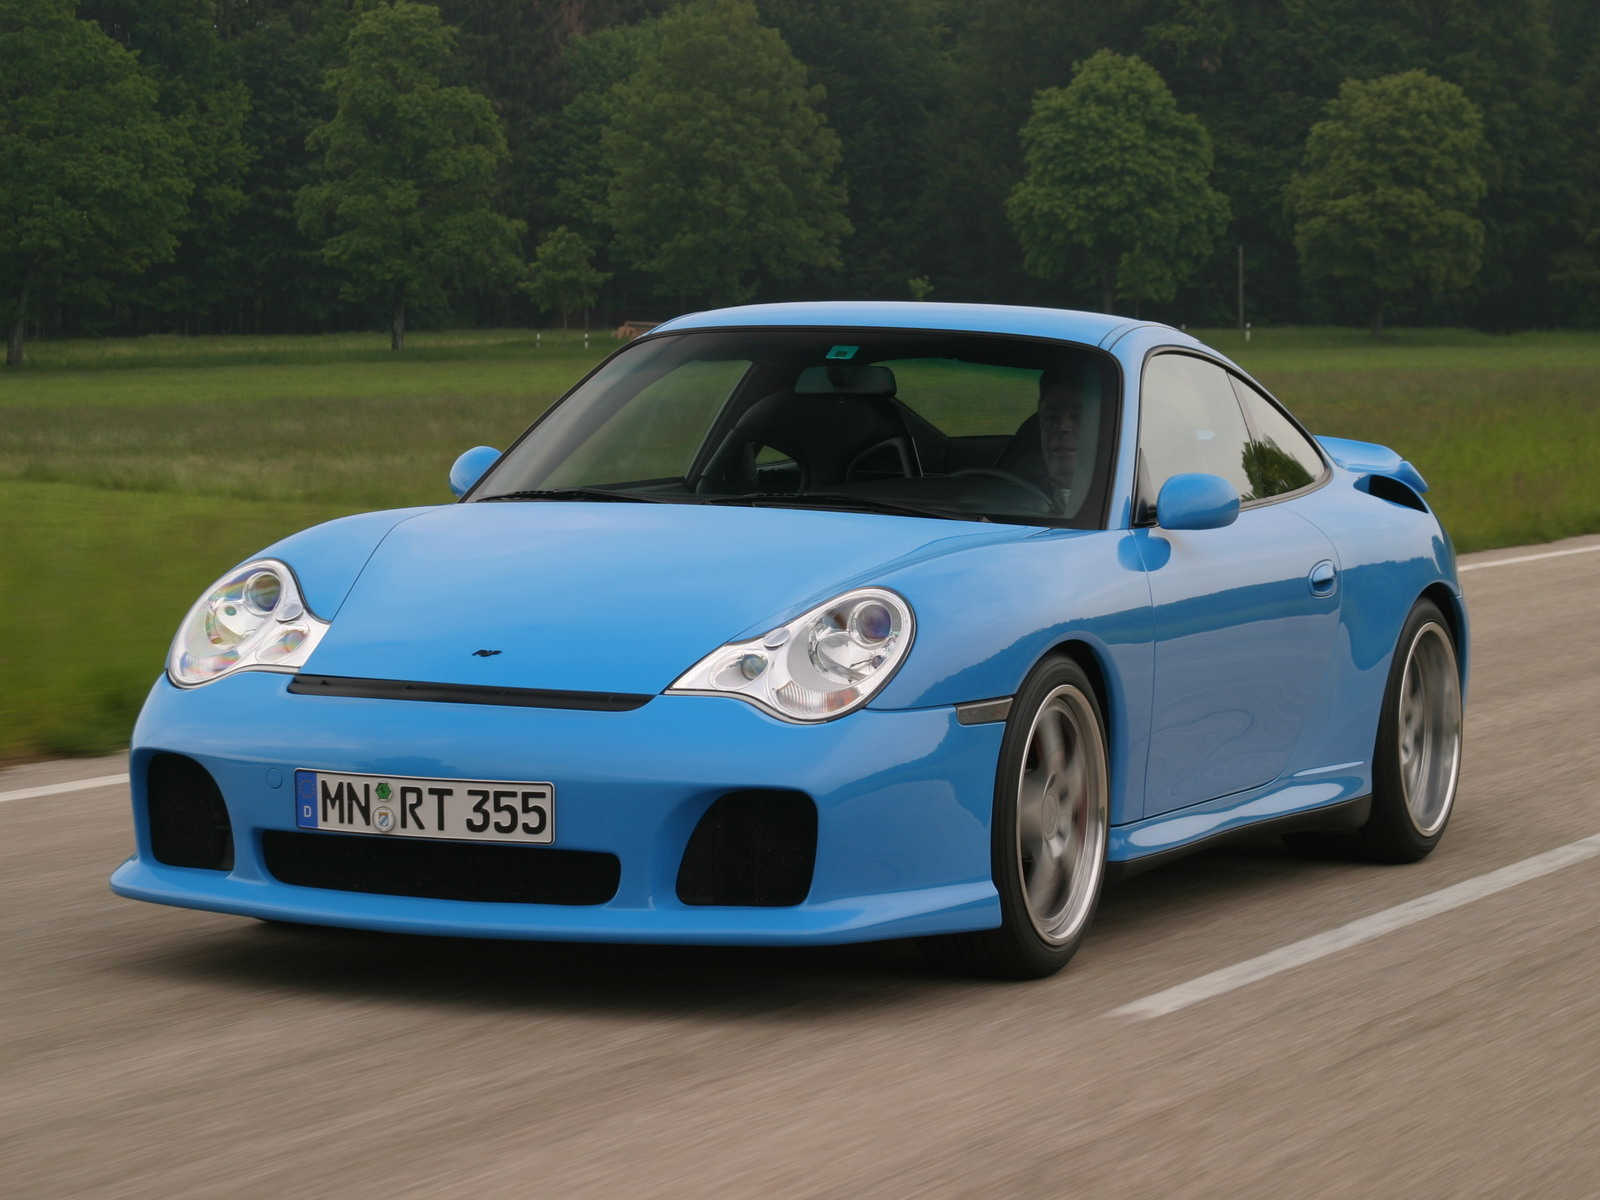 Ruf R Turbo photos - PhotoGallery with 8 pics| CarsBase.com